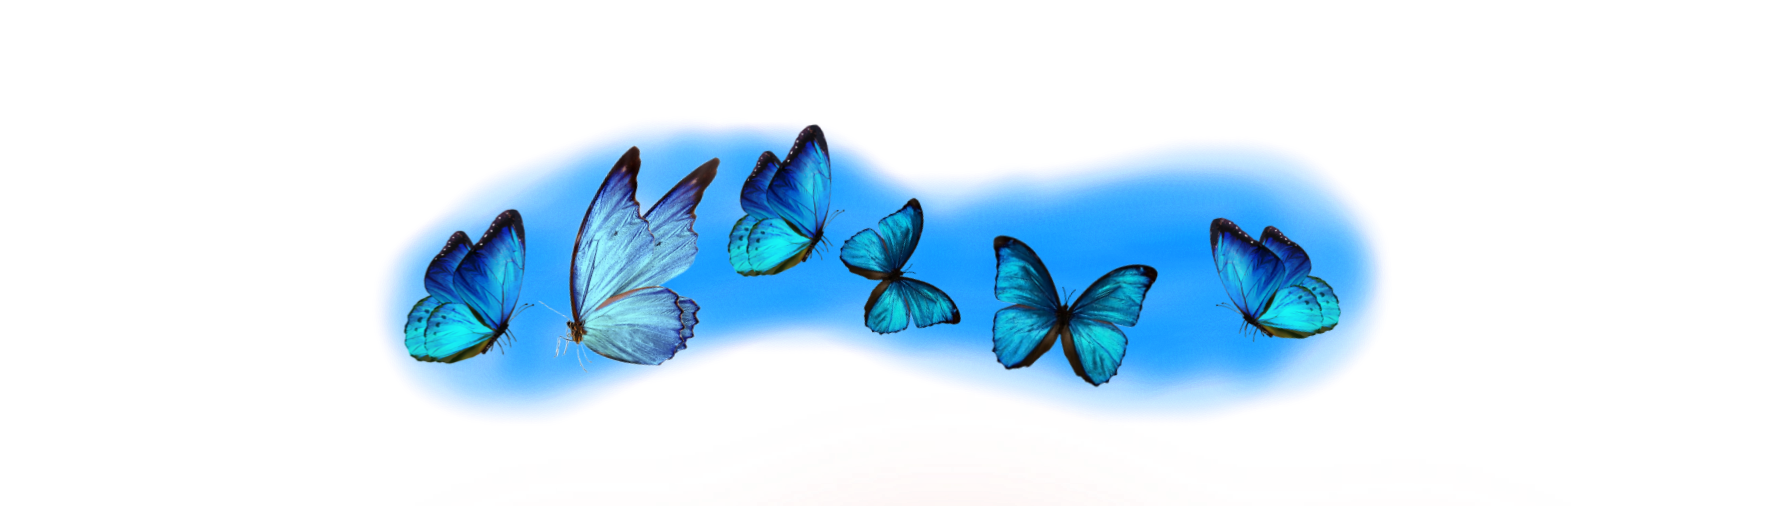 #blue #blush #butterfly #bluebutterfly